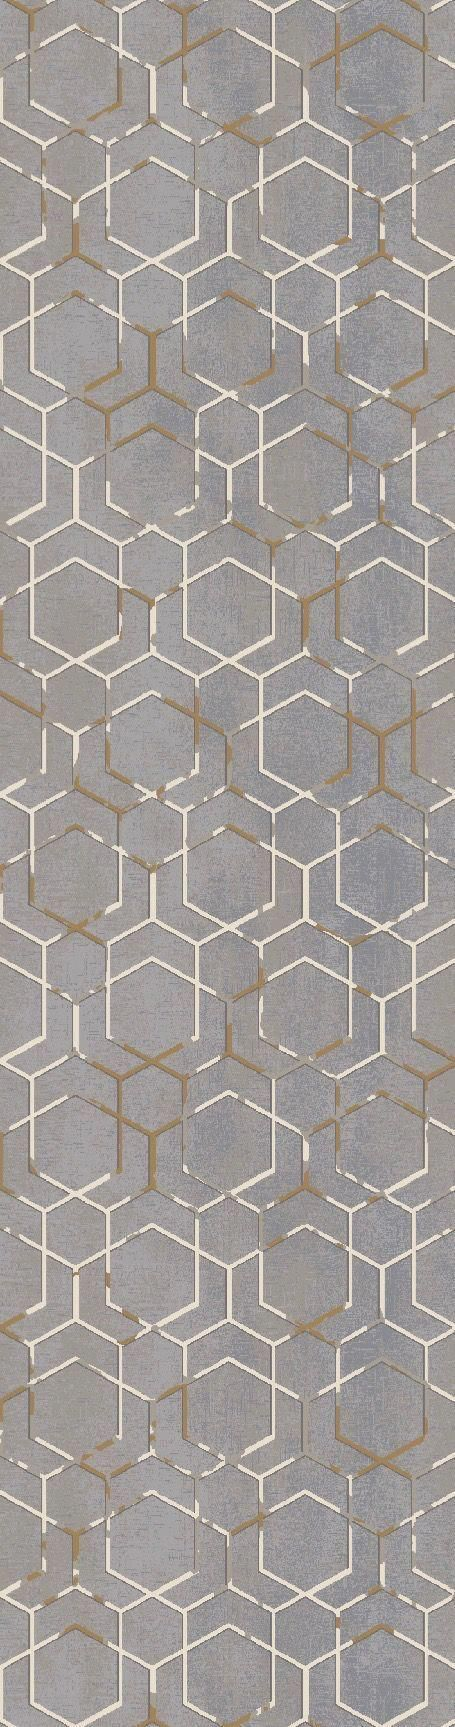 Wonderful Totally Free Carpet Texture geometric Thoughts Carpet can sometimes ob…